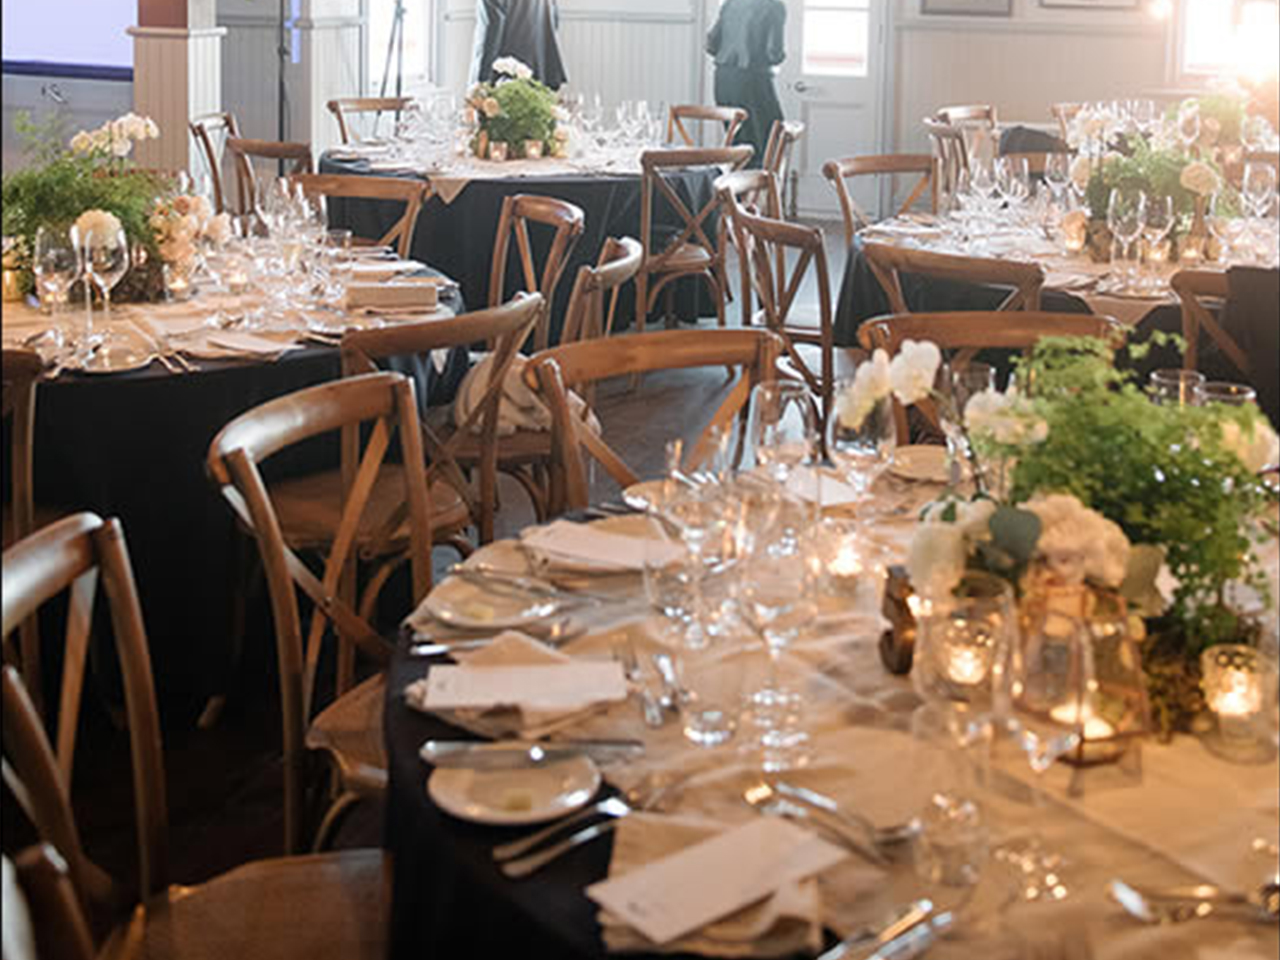 Chairs And Tables In Banquet Style With Centerpieces